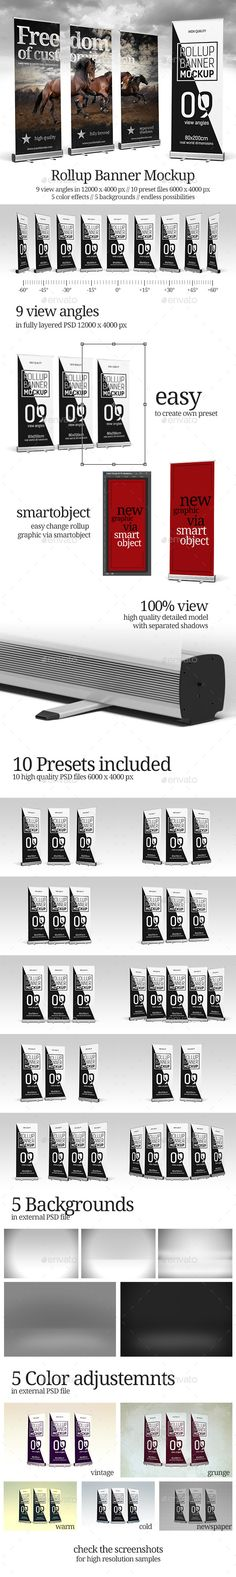 Easy to use and powerfull roll-up banner mockup. // 1 PSD file with all 9 view angles – 12000×4000 px // 10 PSD ready presets files – 6000×4000 px // 1 PSD file with filters and backgrounds // 5 filters (color adjustments) presets // 5 backgrounds  editable via smartobjects // ready for white or transparent background with keeping all shadows